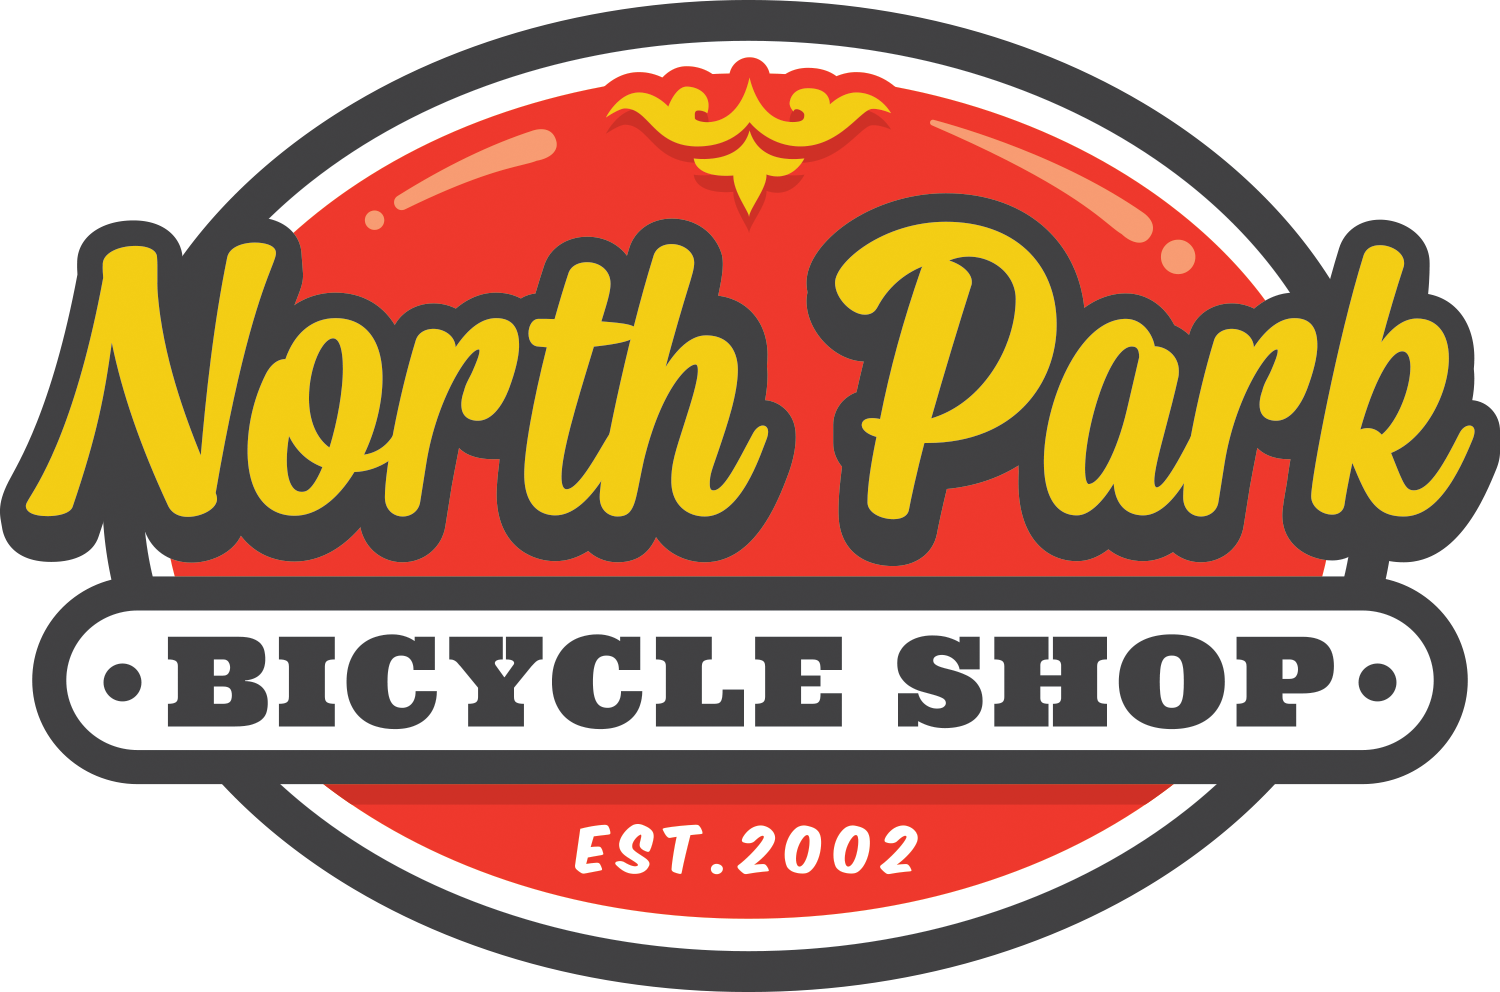 North Park Bike Shop